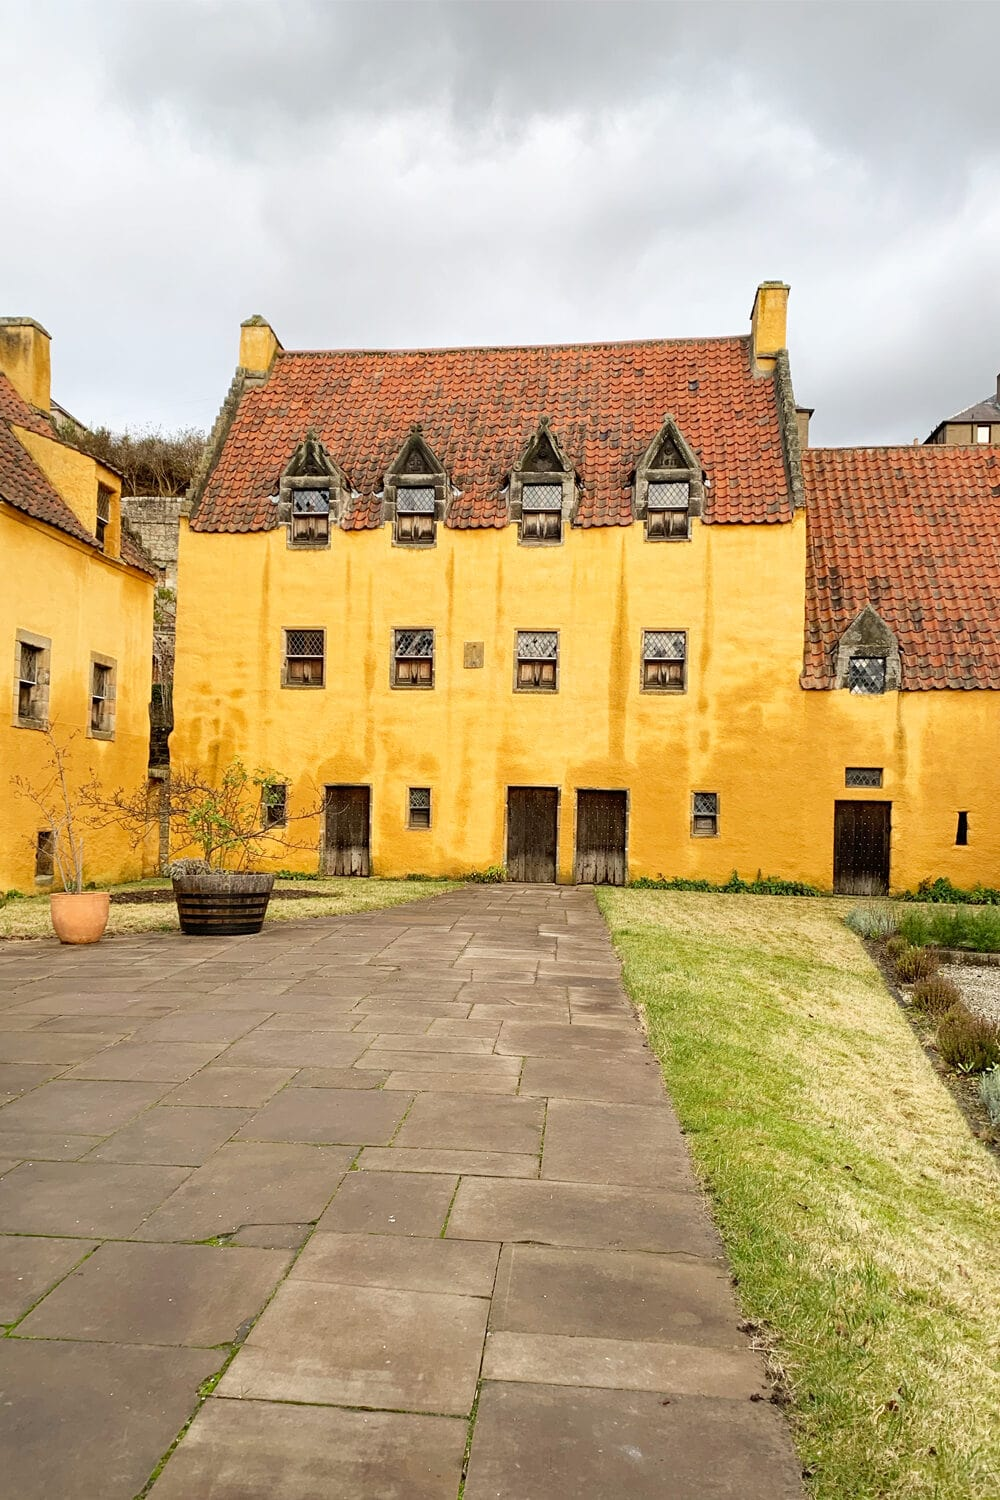 yellow house in the village of Culross